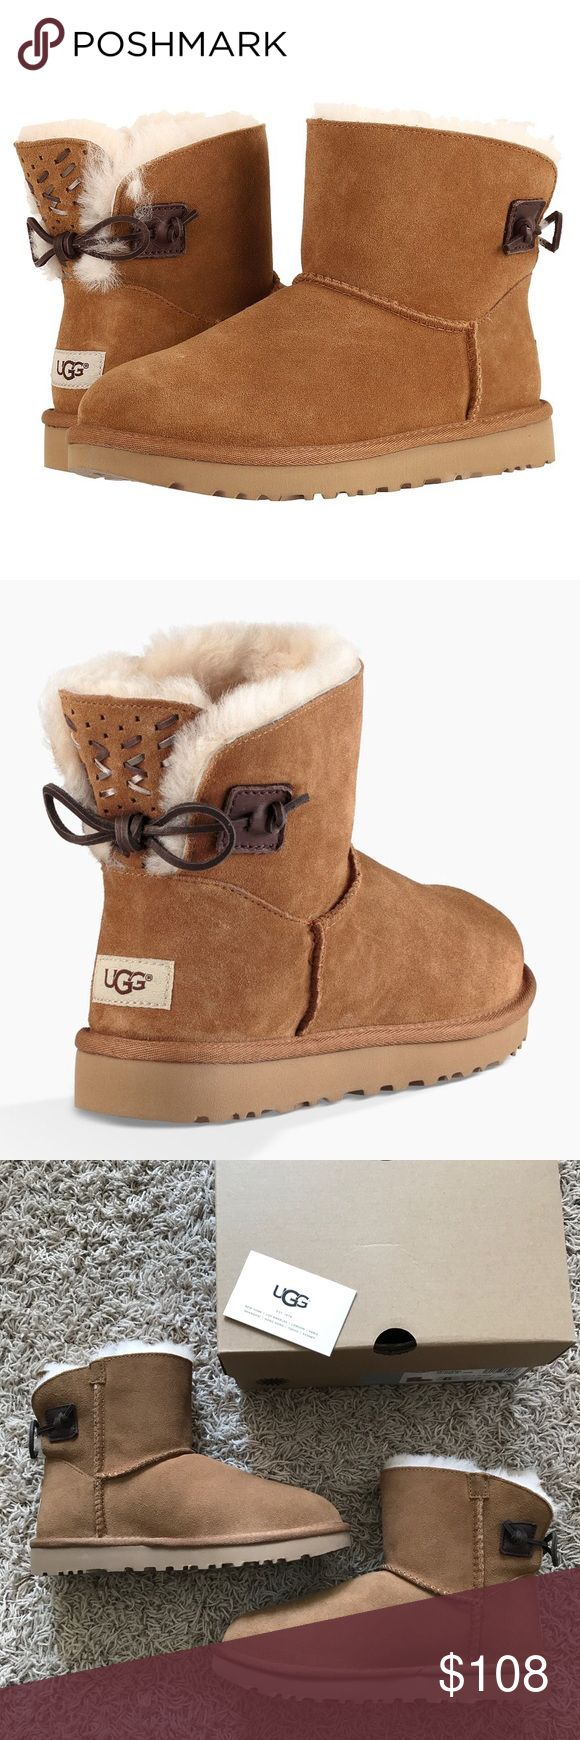 New Ugg Australia Adoria Short Chestnut Boots Ugg Australia Adoria Tehuano Short Boots in Chestnut •New in box •Size 6 •Retails for $150  Check out my other listings- Nike, adidas, Michael Kors, Kate Spade, Miss Me, Coach, Wildfox, Victoria's Secret, PINK, Under Armour, True Religion, Ugg Australia, Free People and more! UGG Shoes Ankle Boots & Booties